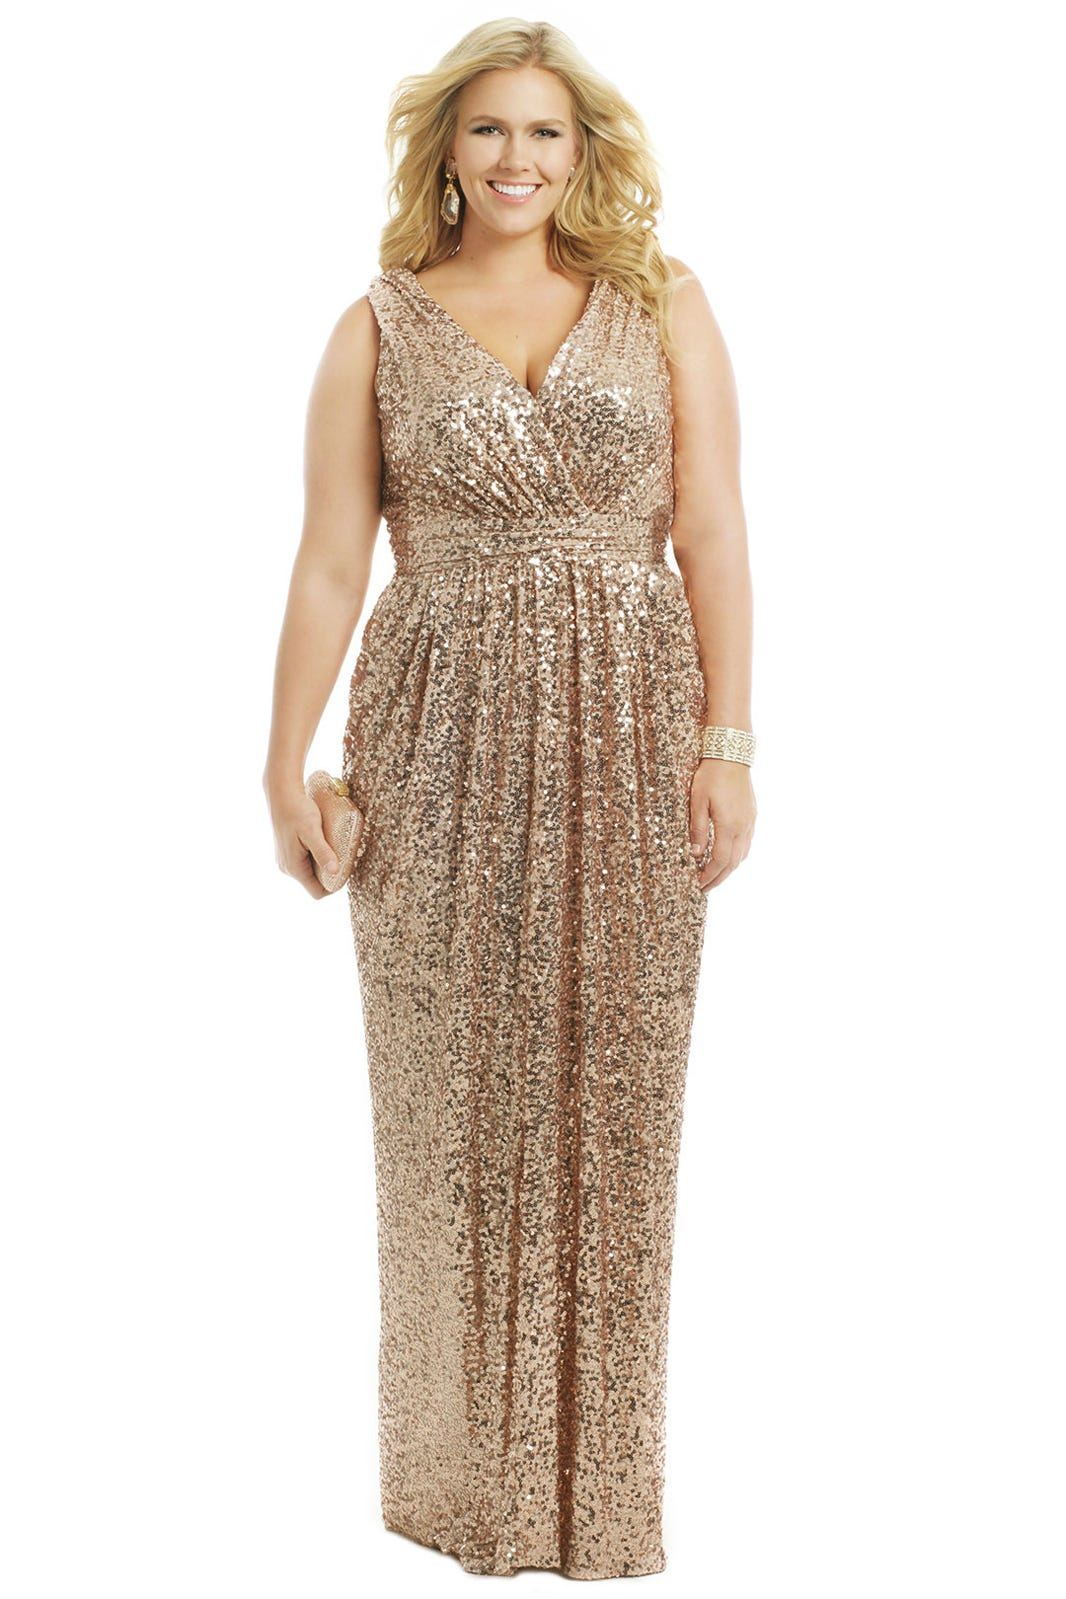 Plus Size Dresses Holiday Outfits